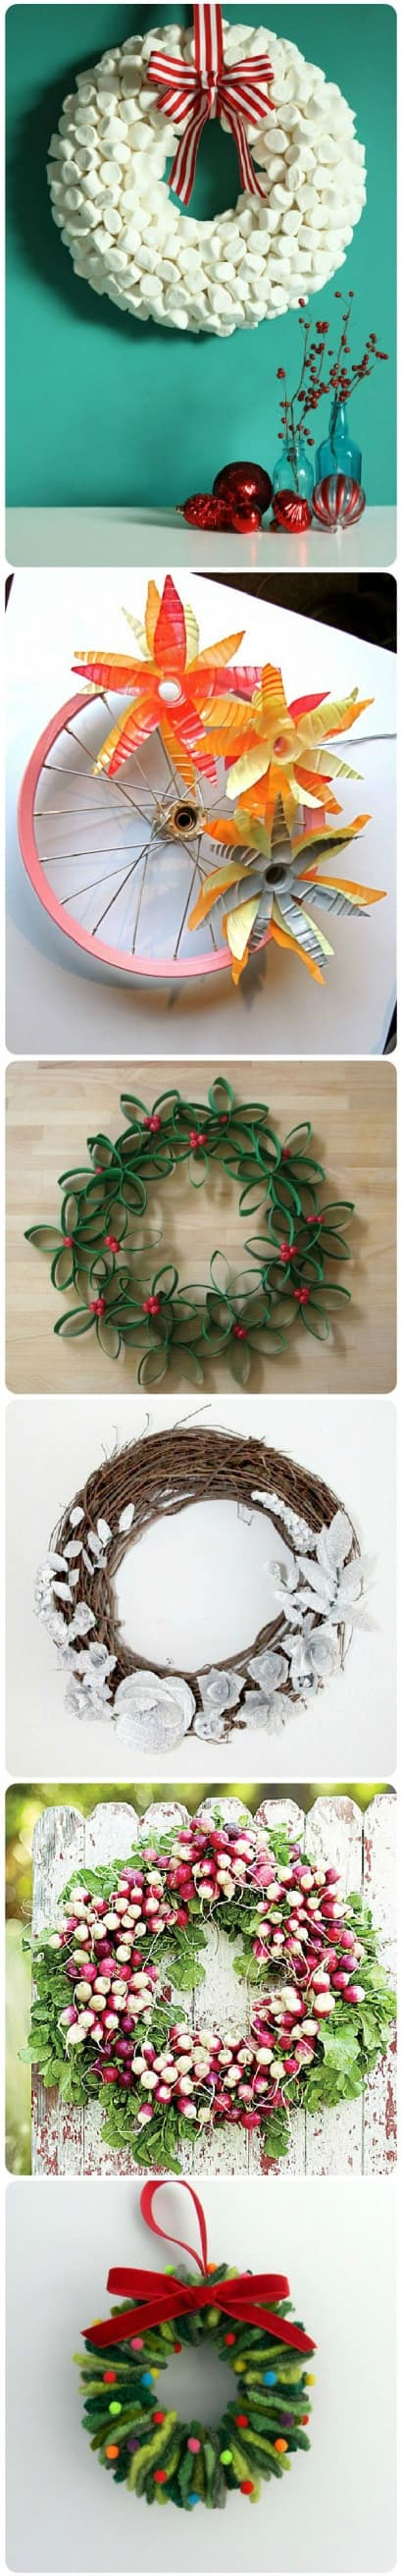 15 Stunning Repurposed DIY Wreaths